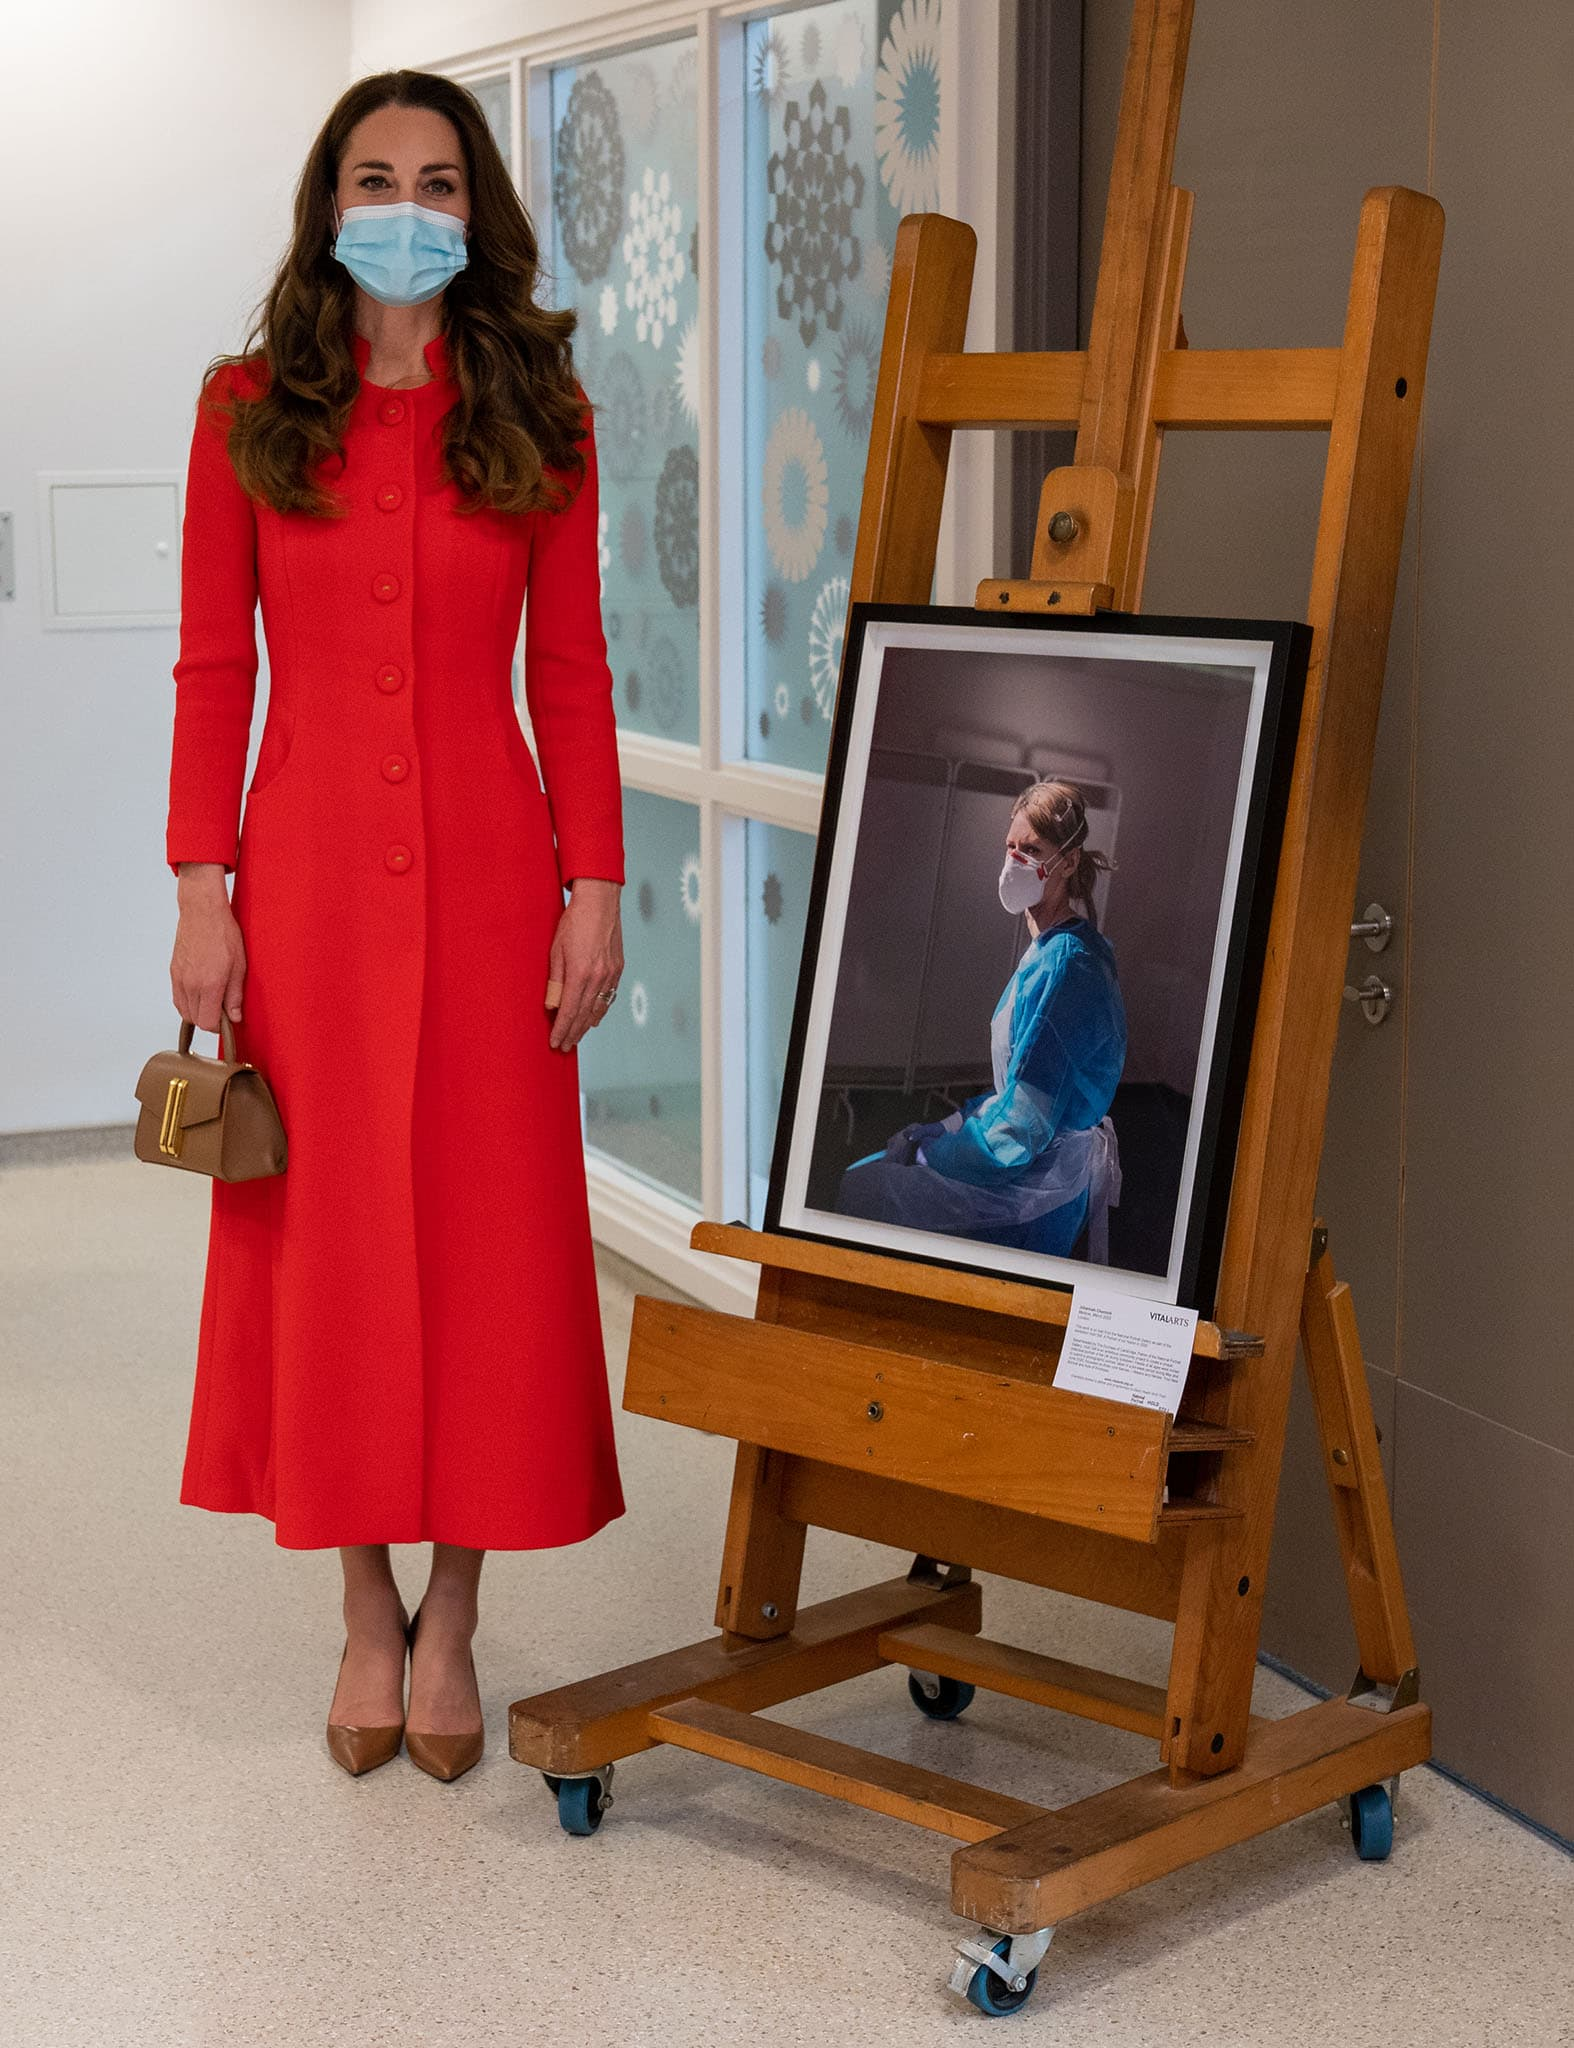 Duchess of Cambridge Kate Middleton asked the public a year ago to submit images that chronicled life during lockdown